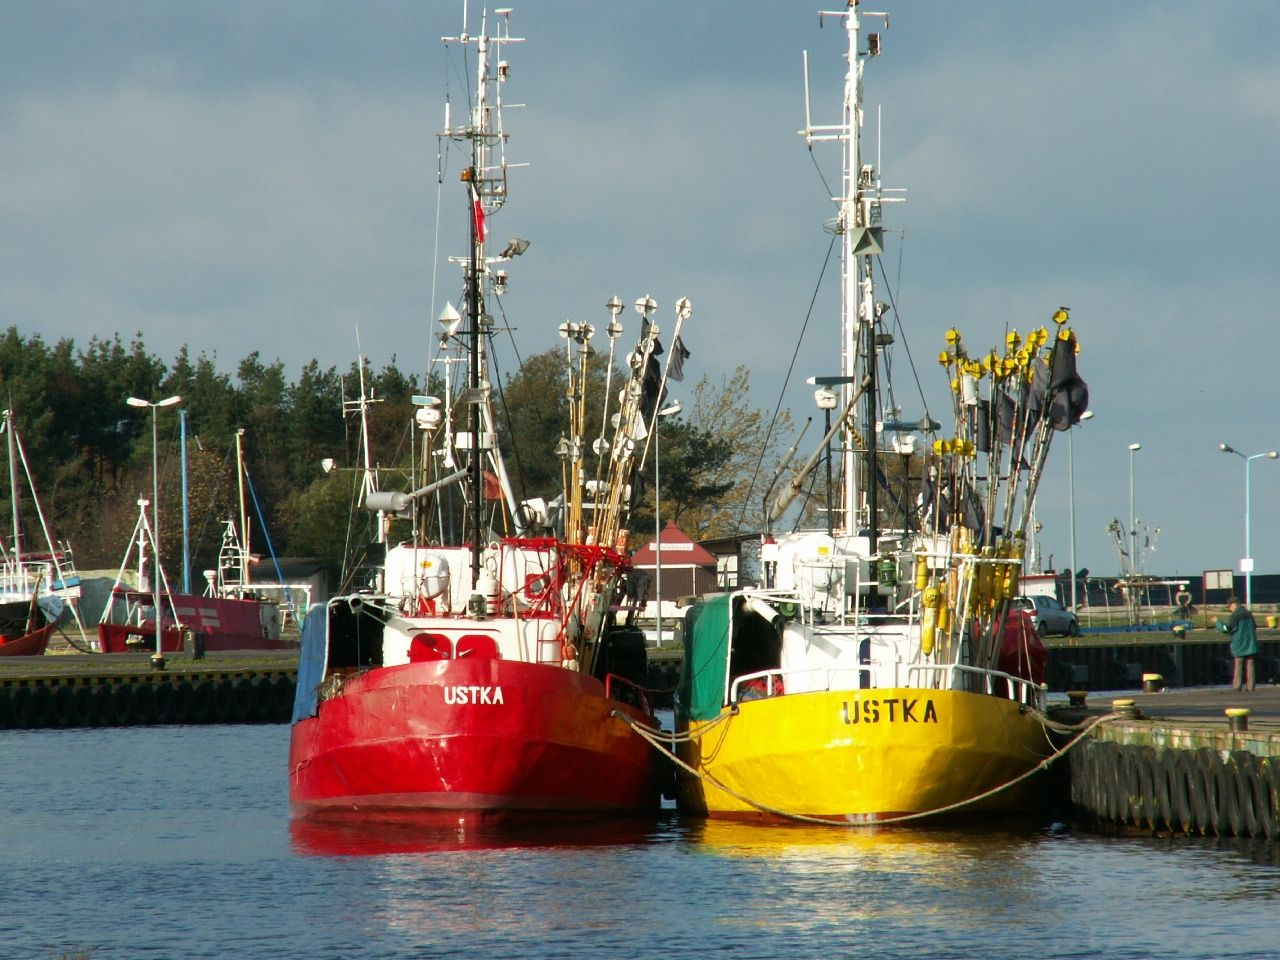 Fishing boats in Ustka